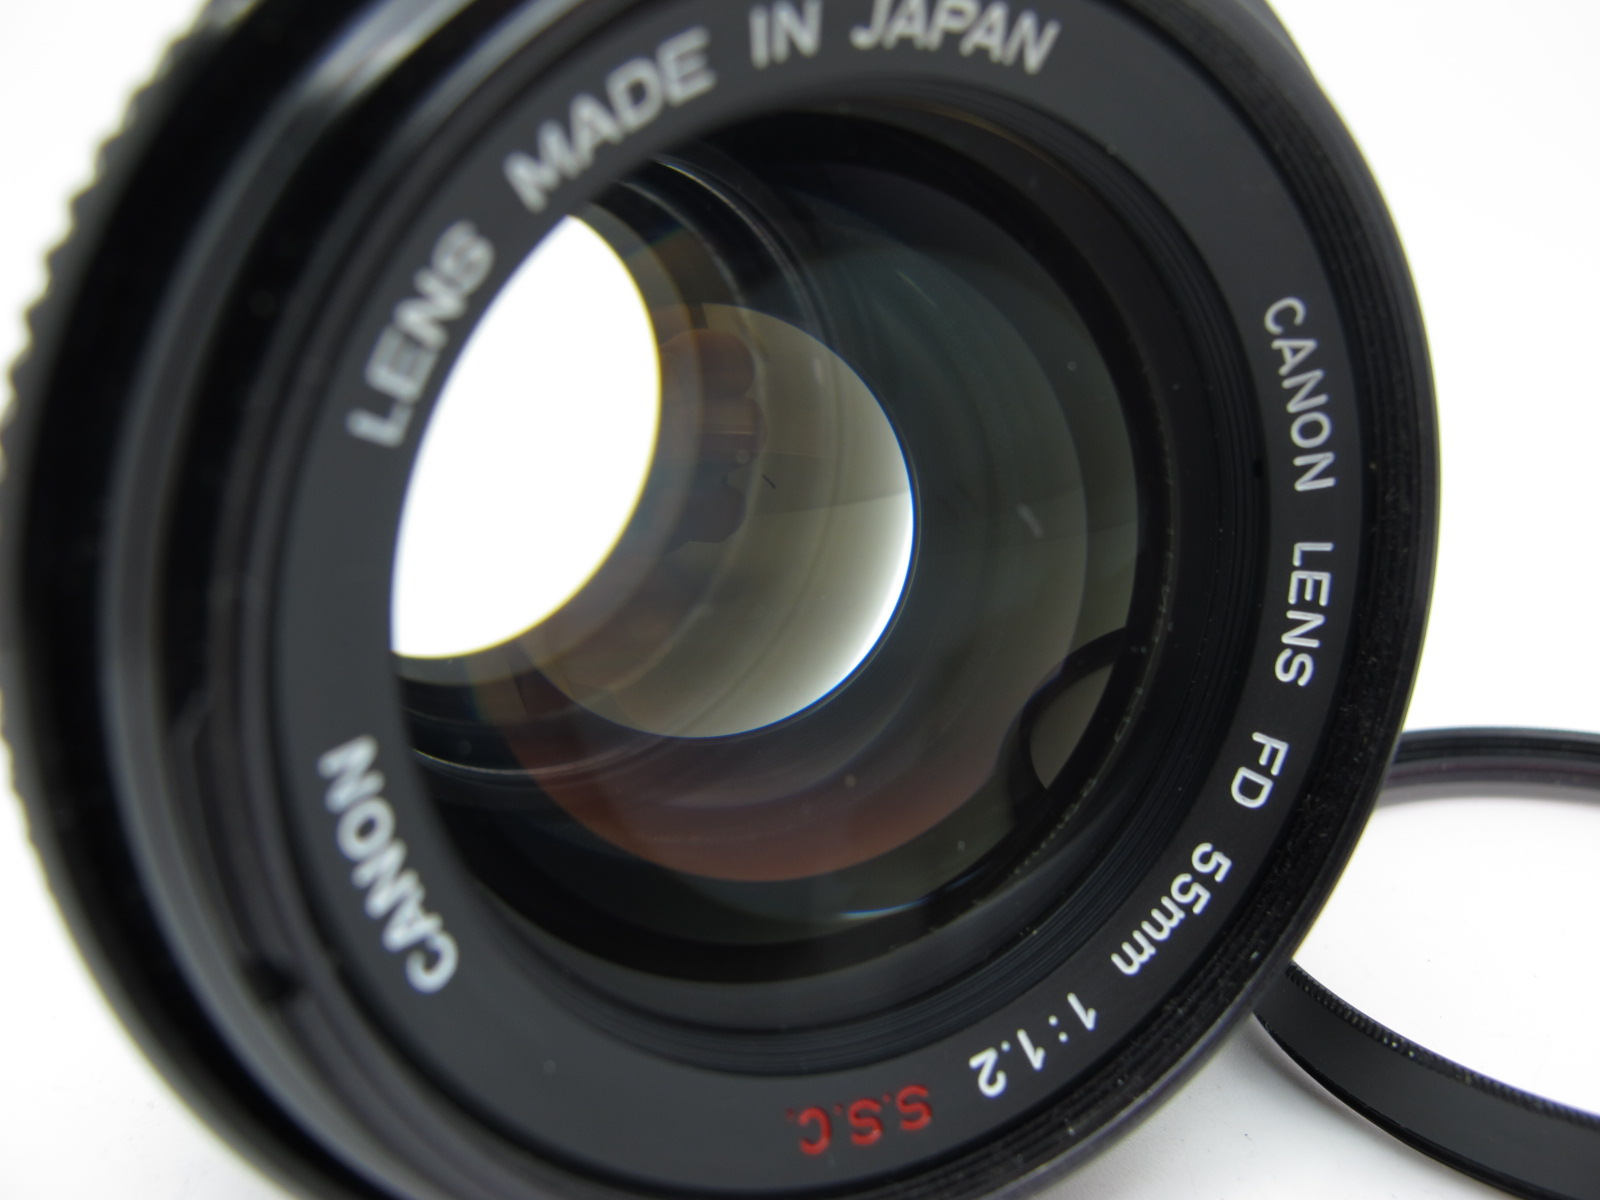 Canon Lens, FD 55mm 1:12 S.S.C. lens, in canvas case. - Image 6 of 6